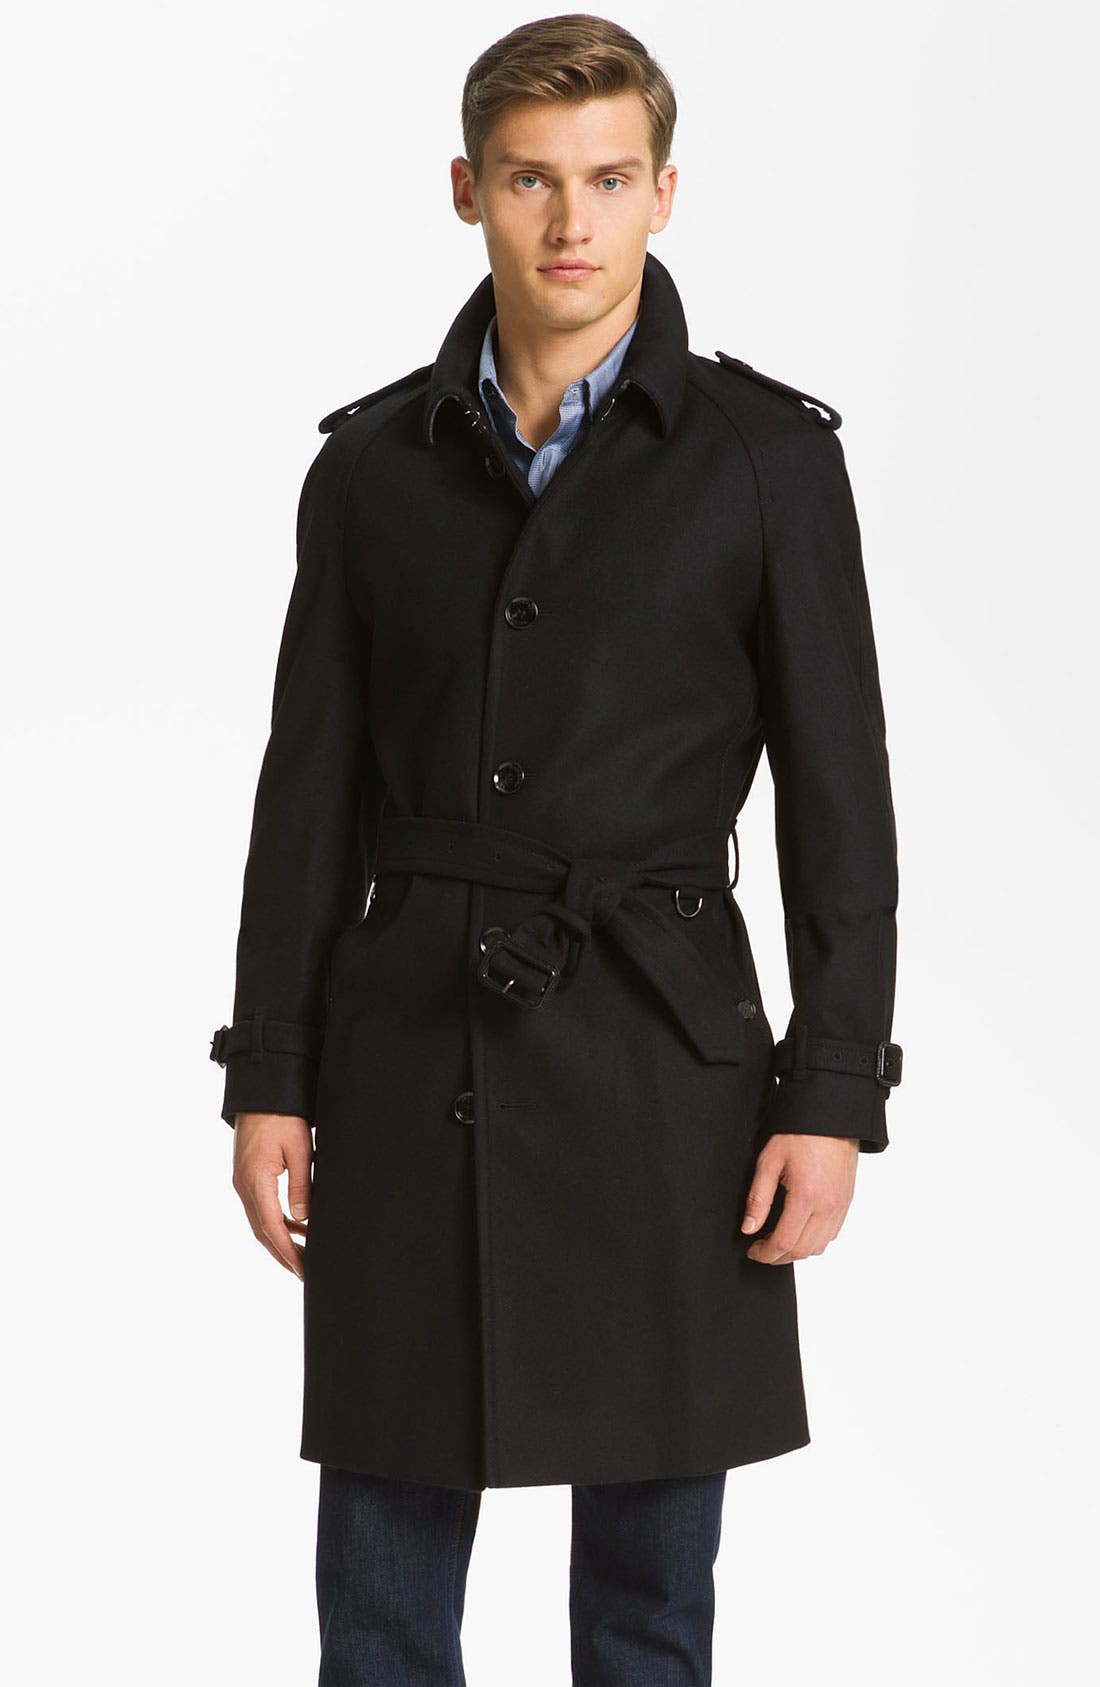 Alternate Image 1 Selected - Burberry London Trim Fit Wool Blend Trench Coat